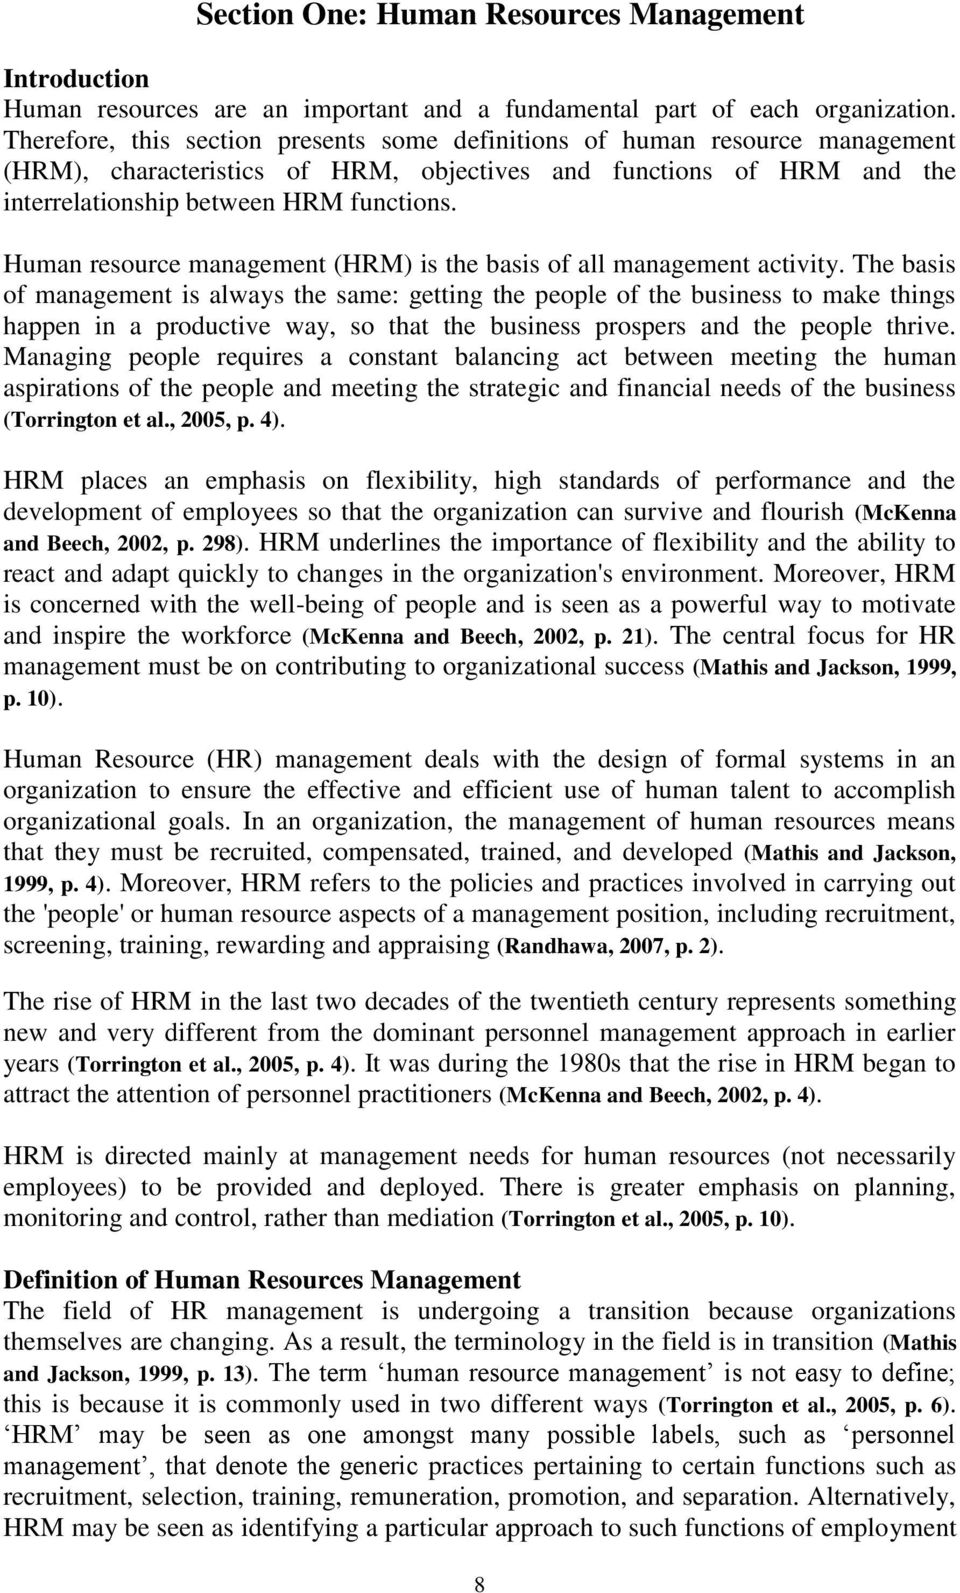 Human resource management (HRM) is the basis of all management activity.